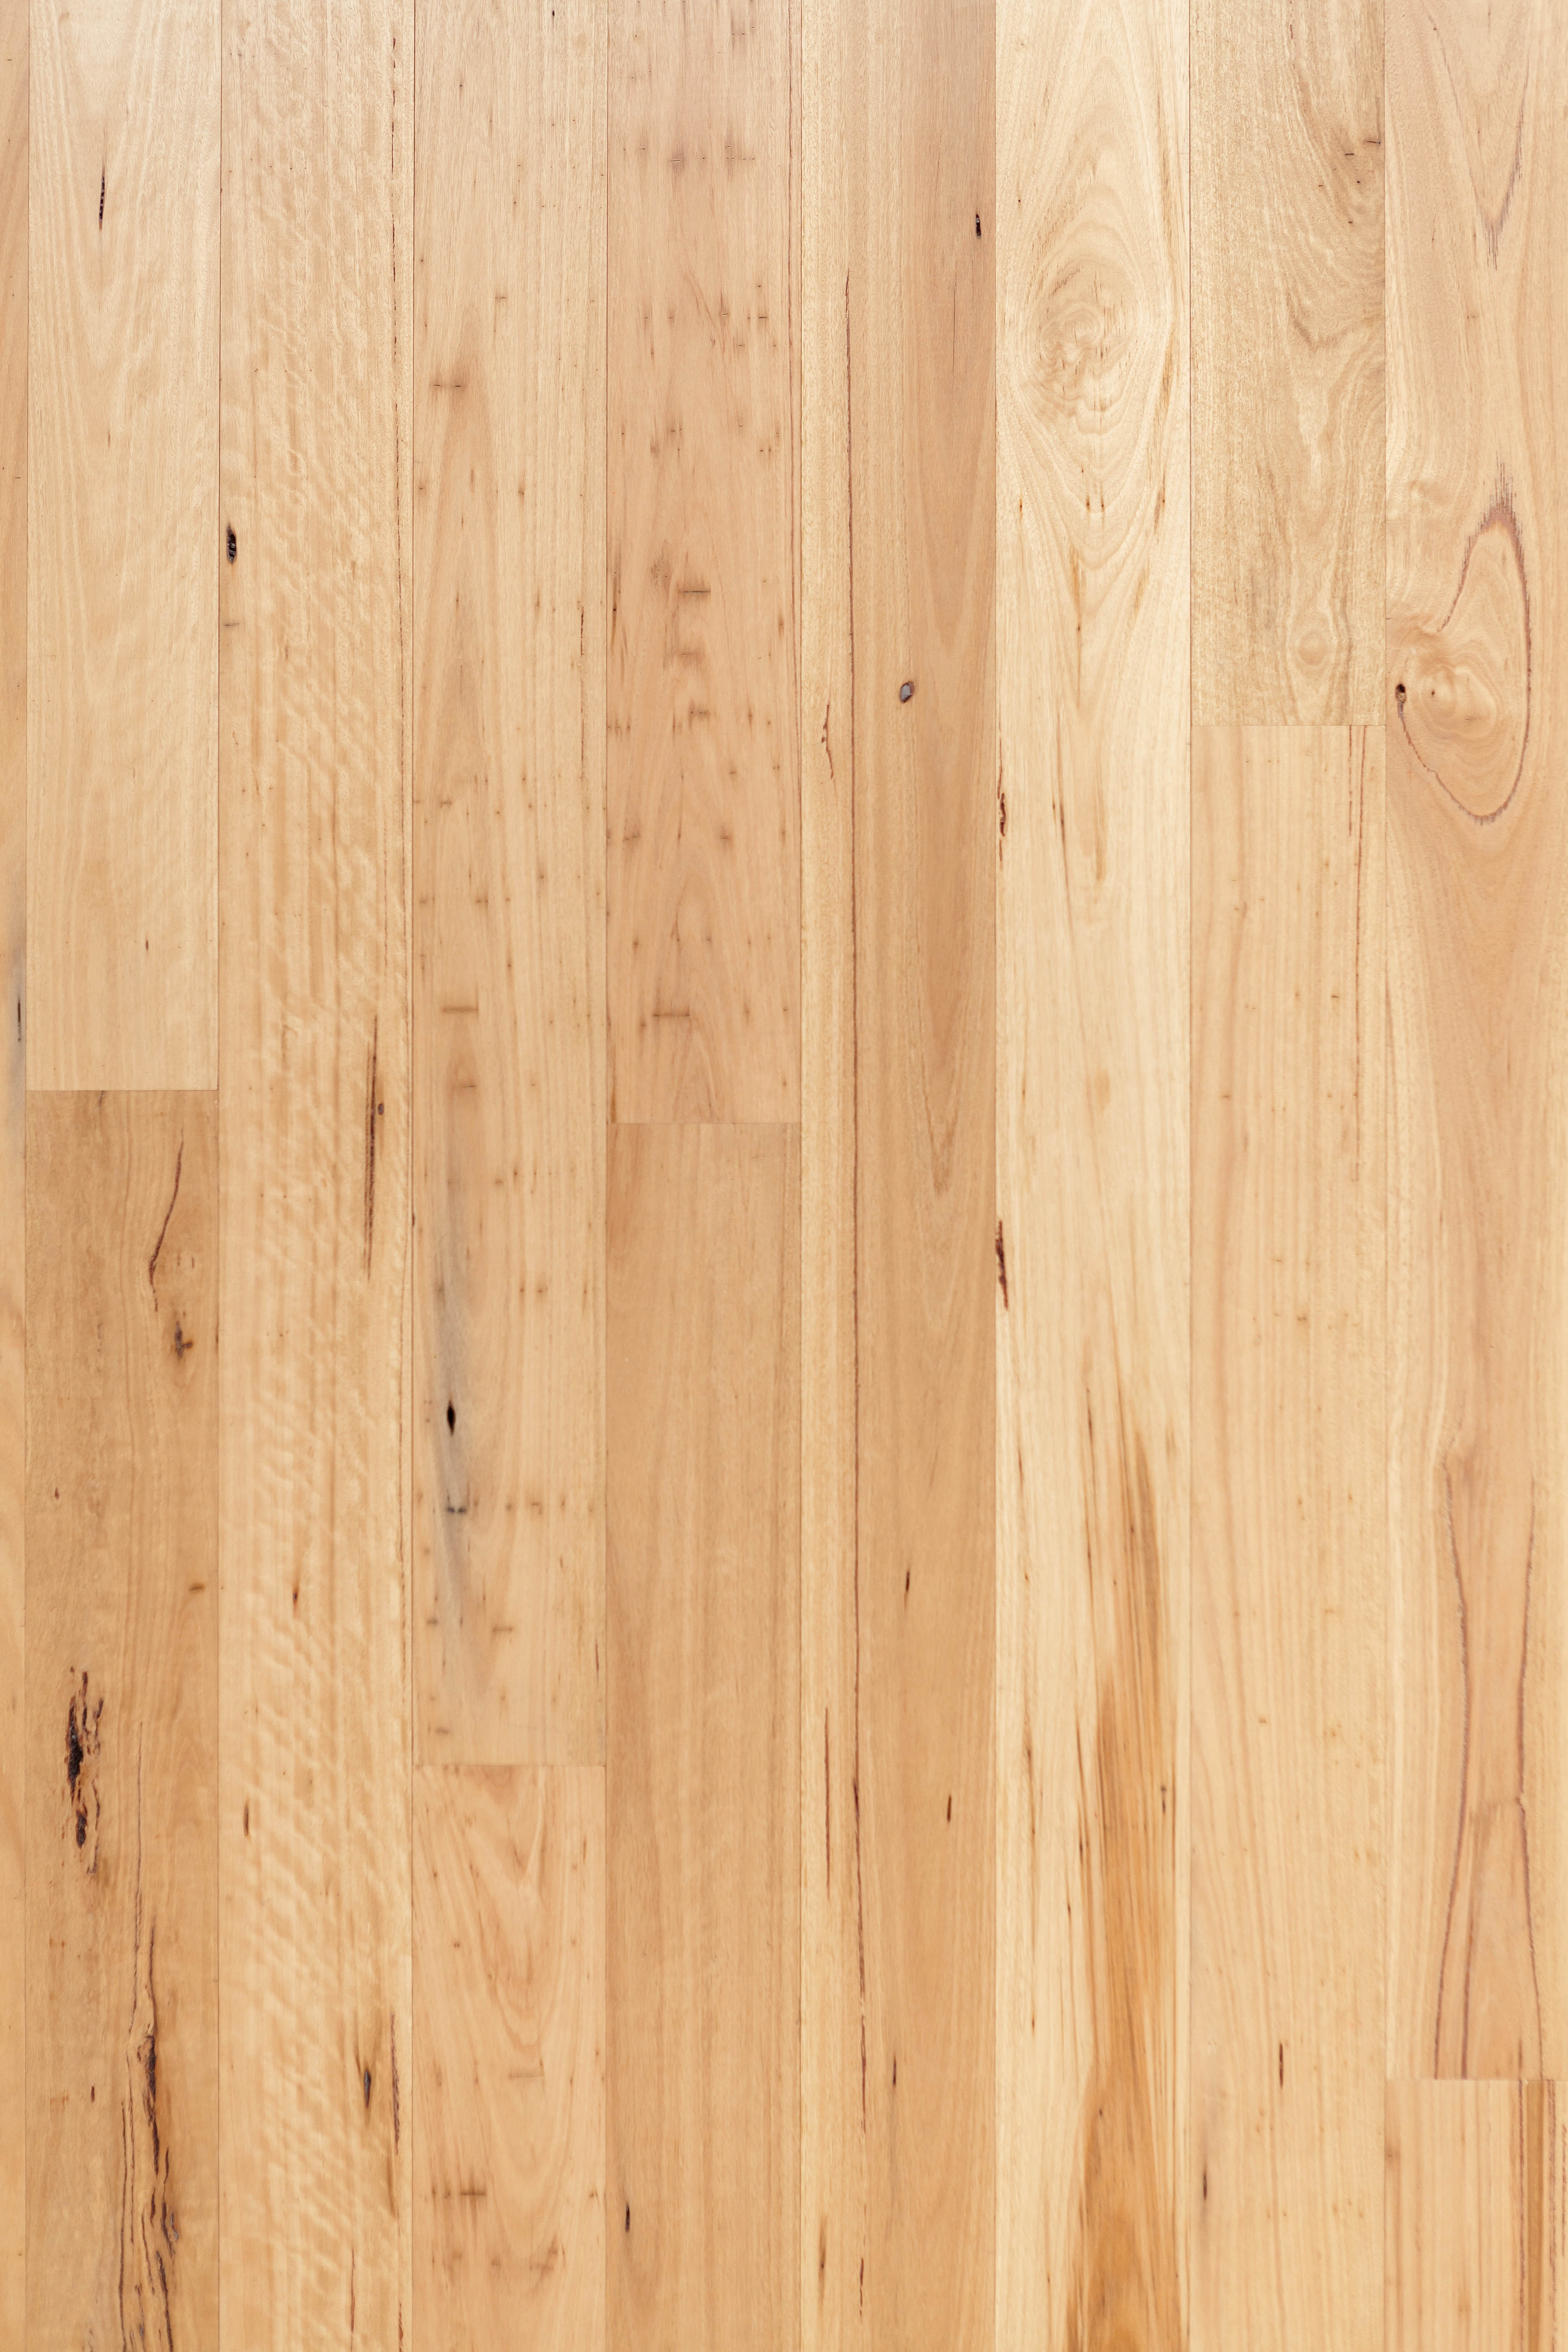 Brompton commercial construction wood detail